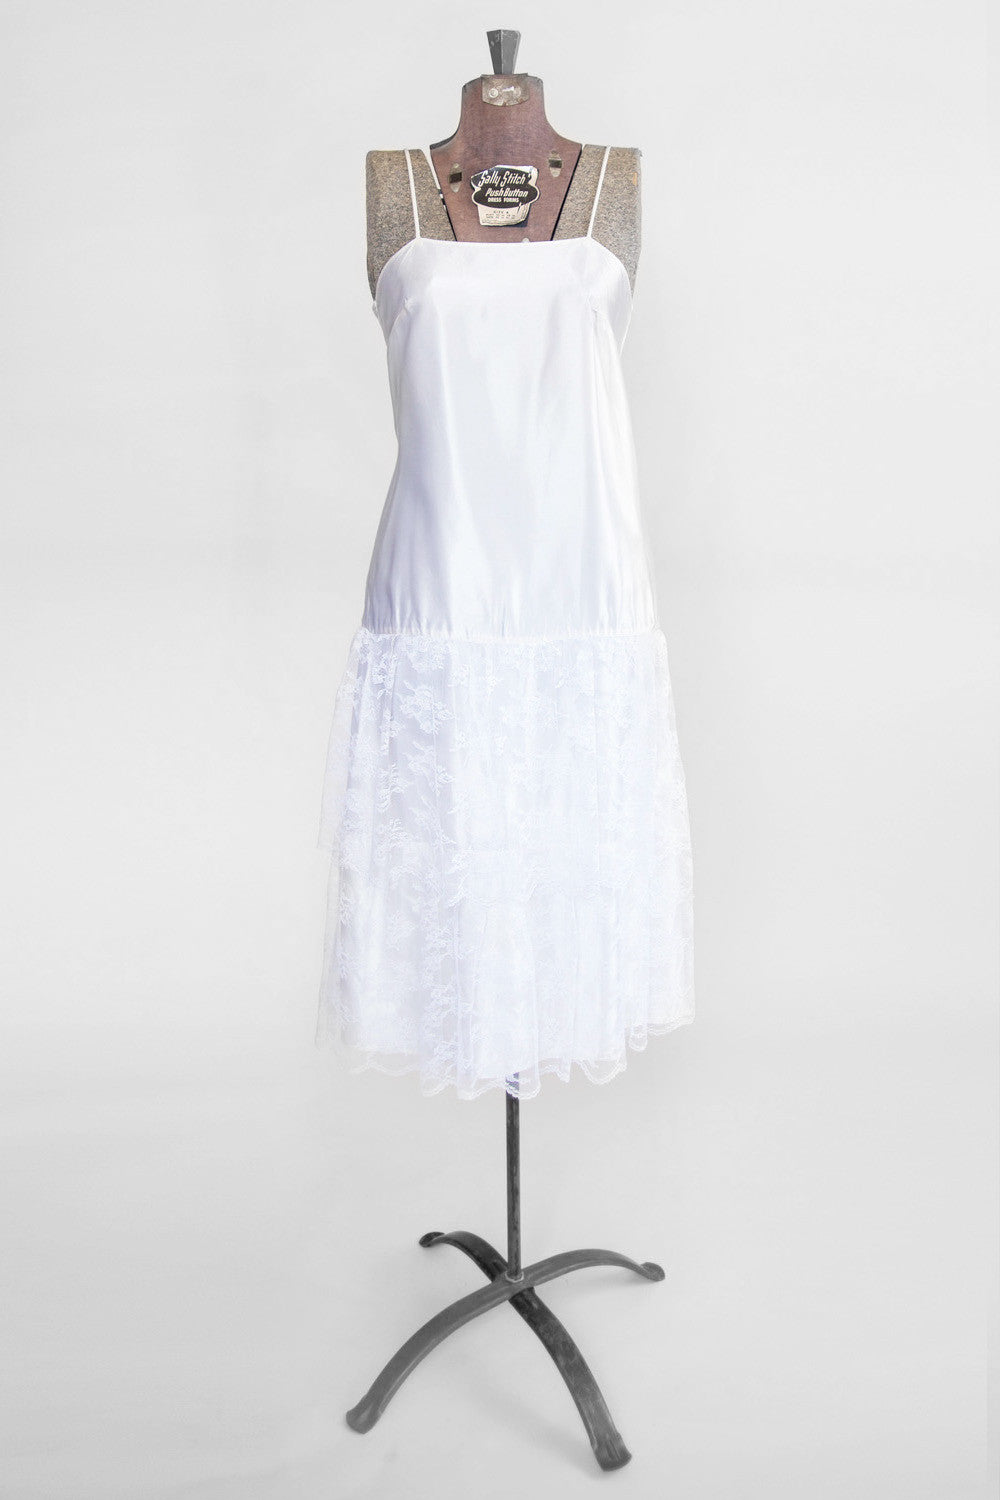 Vintage Women's White Slip Dress